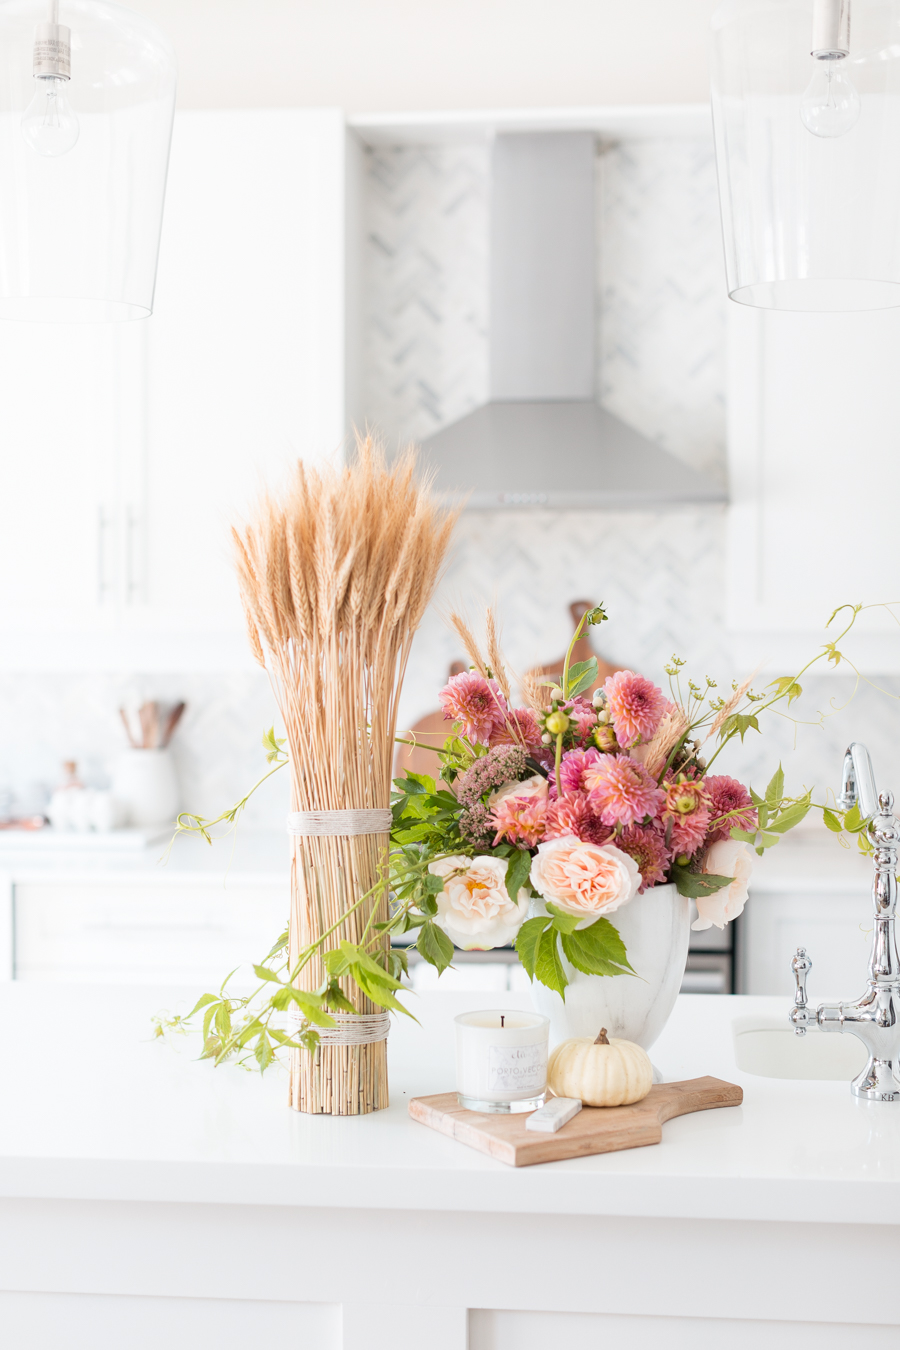 Wheat and Floral Centerpiece